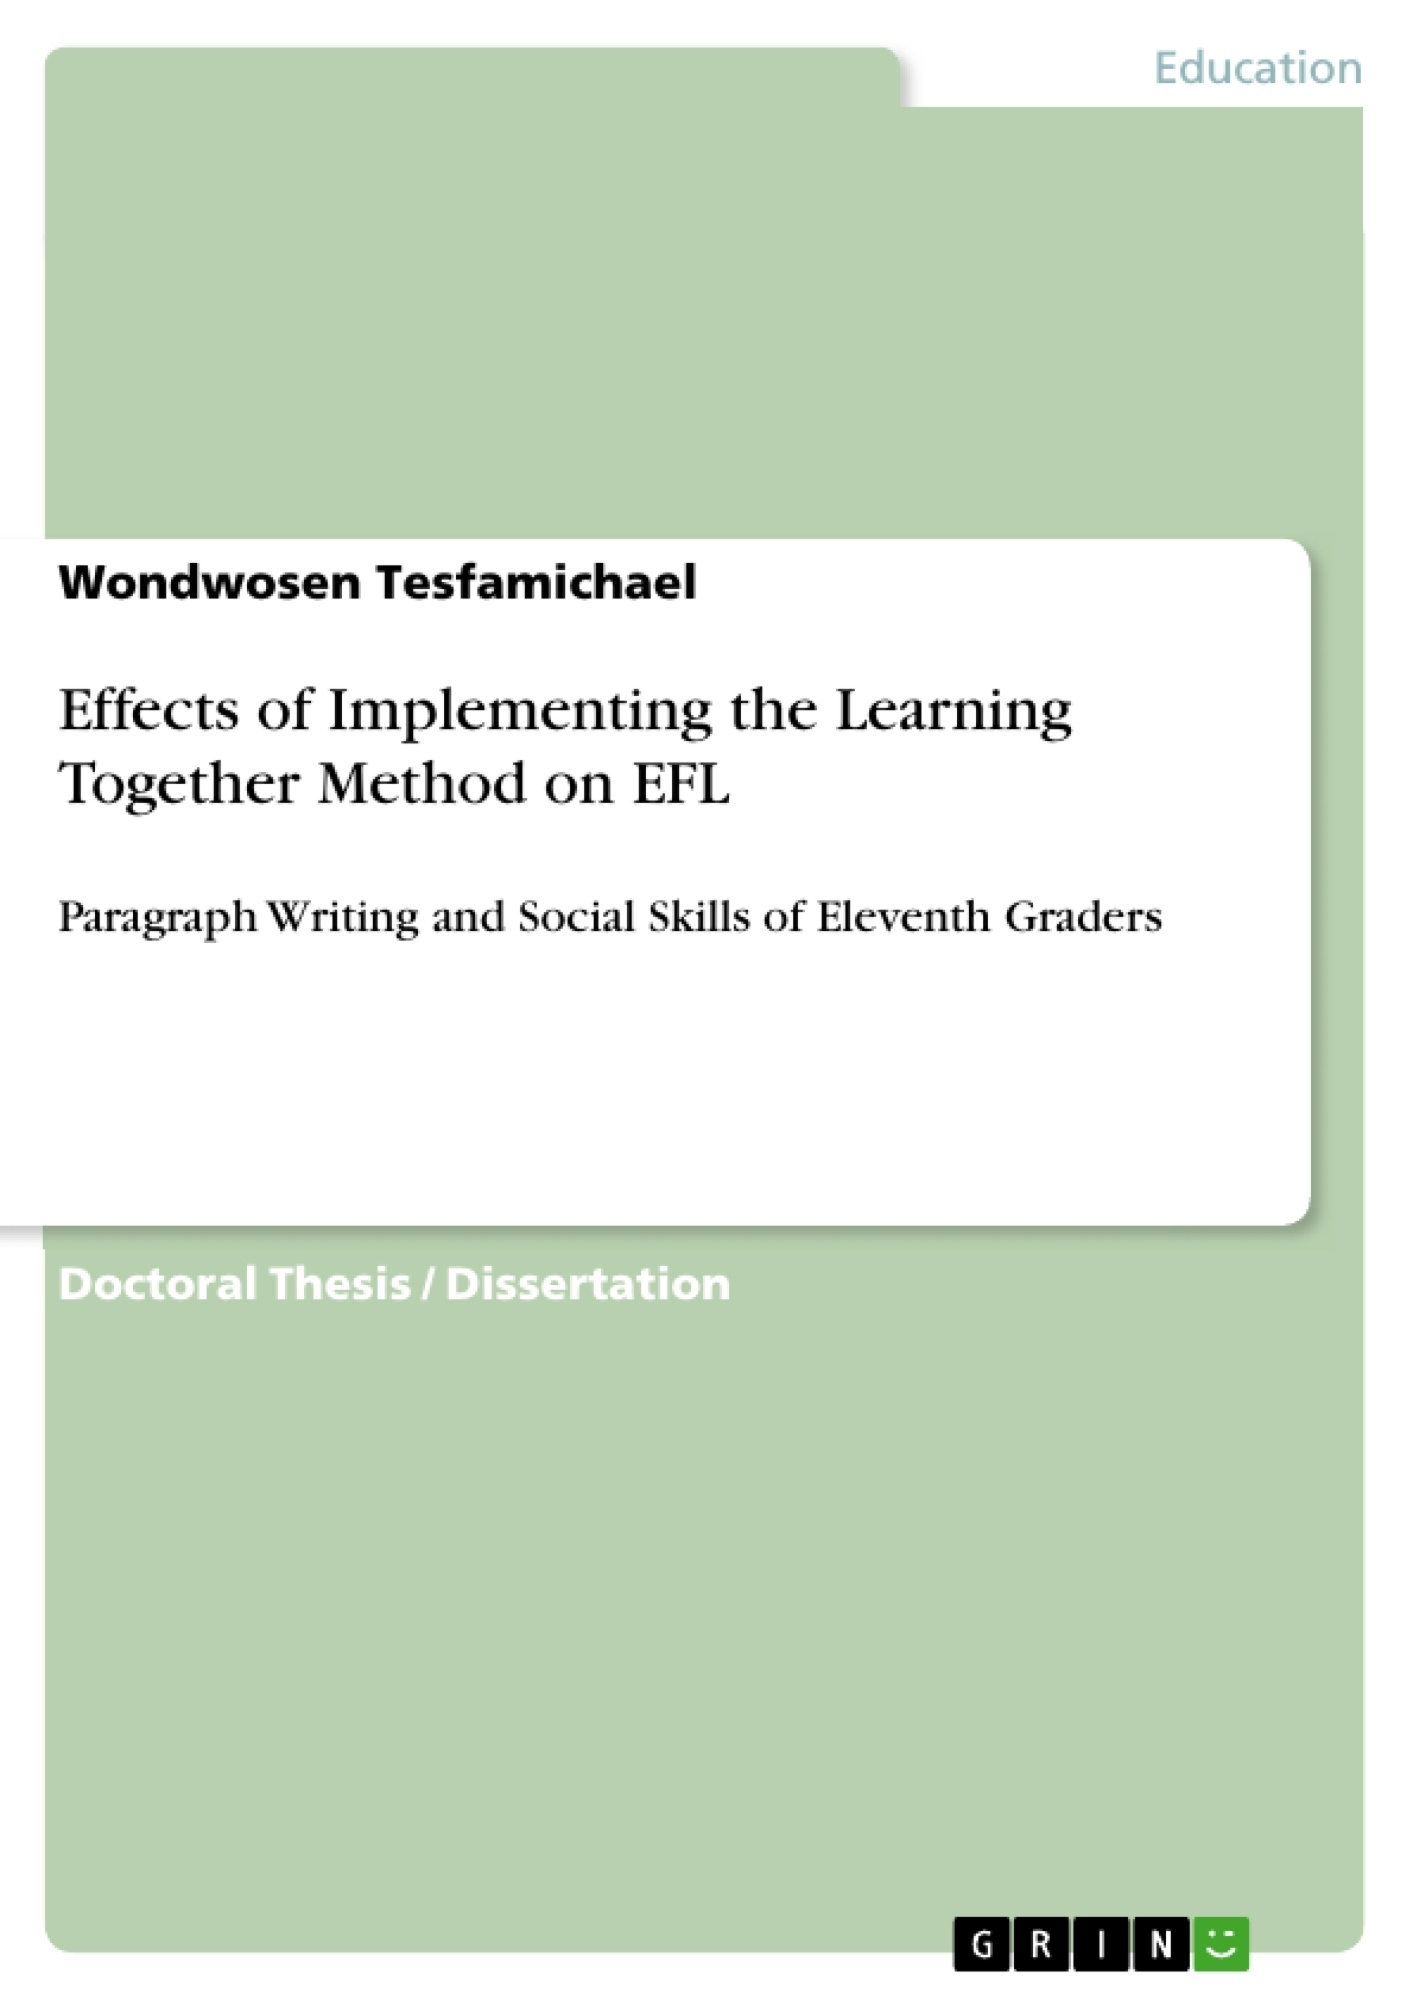 GRIN - Effects of Implementing the Learning Together Method on EFL